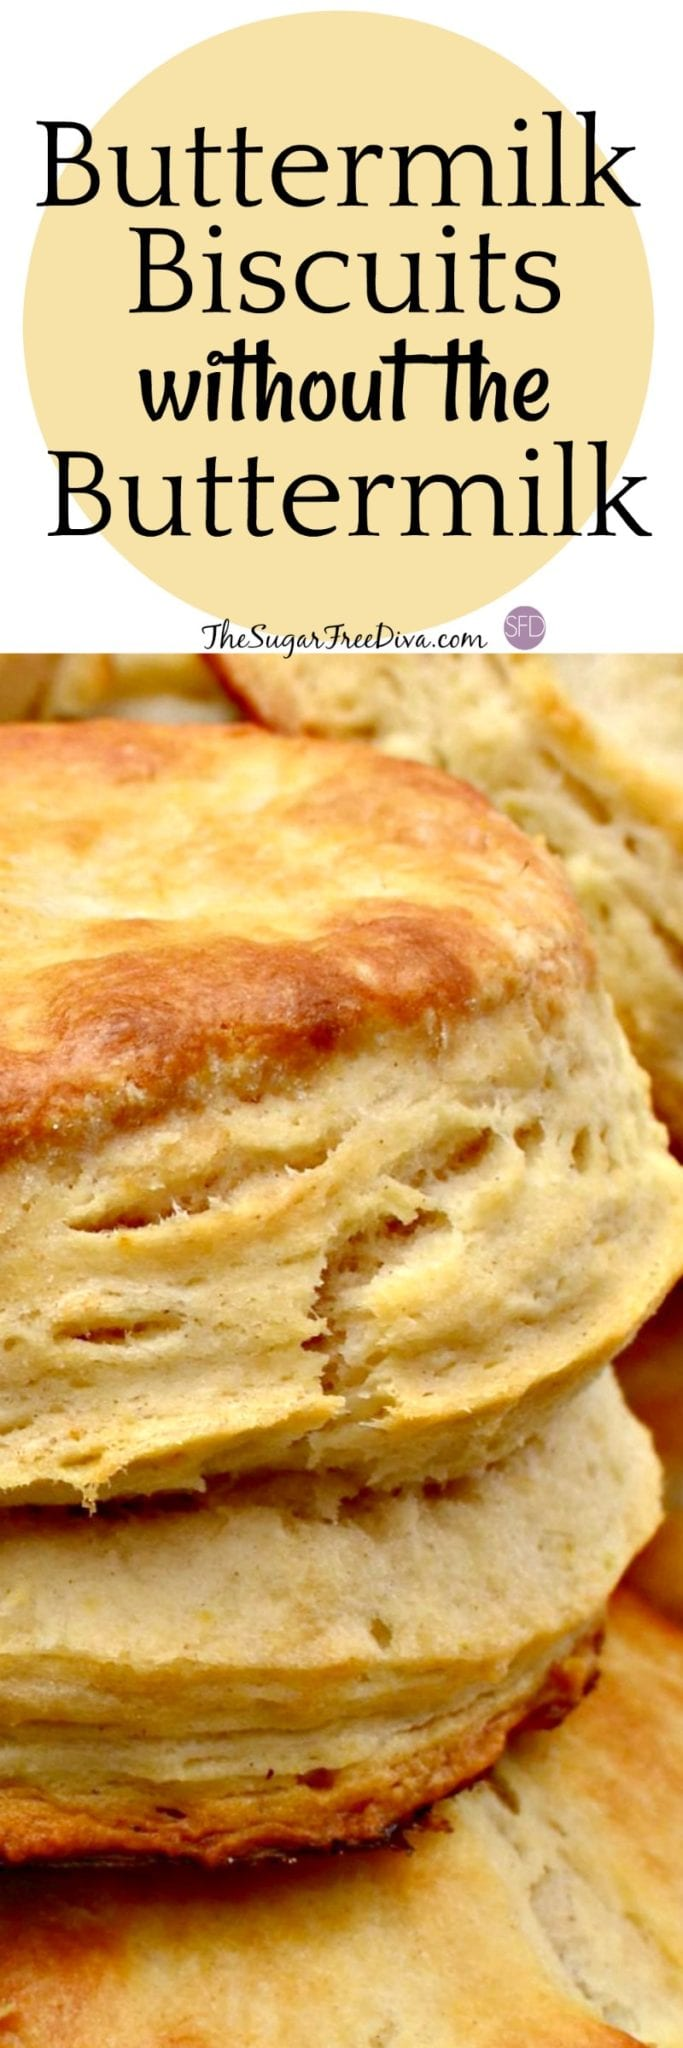 How to Make Buttermilk Biscuits Without the Buttermilk